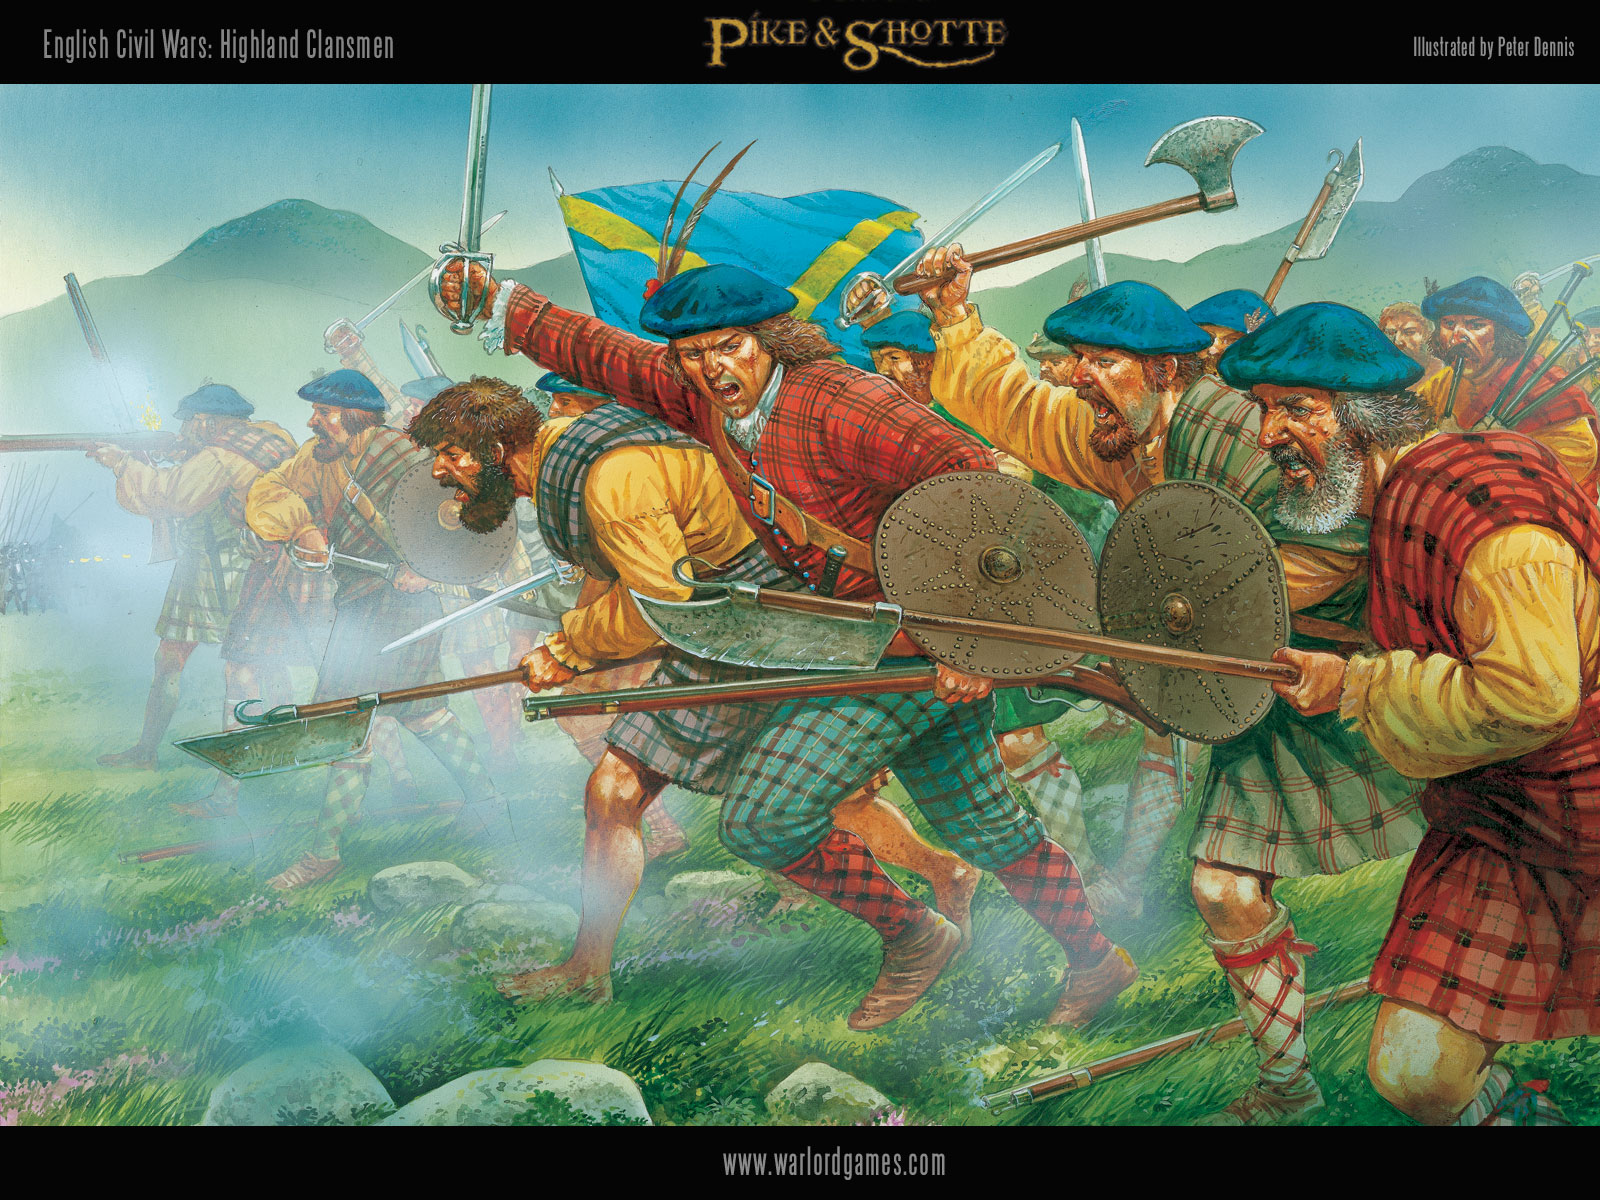 Illustrations P&S Highland-Clansmen-wallpaper